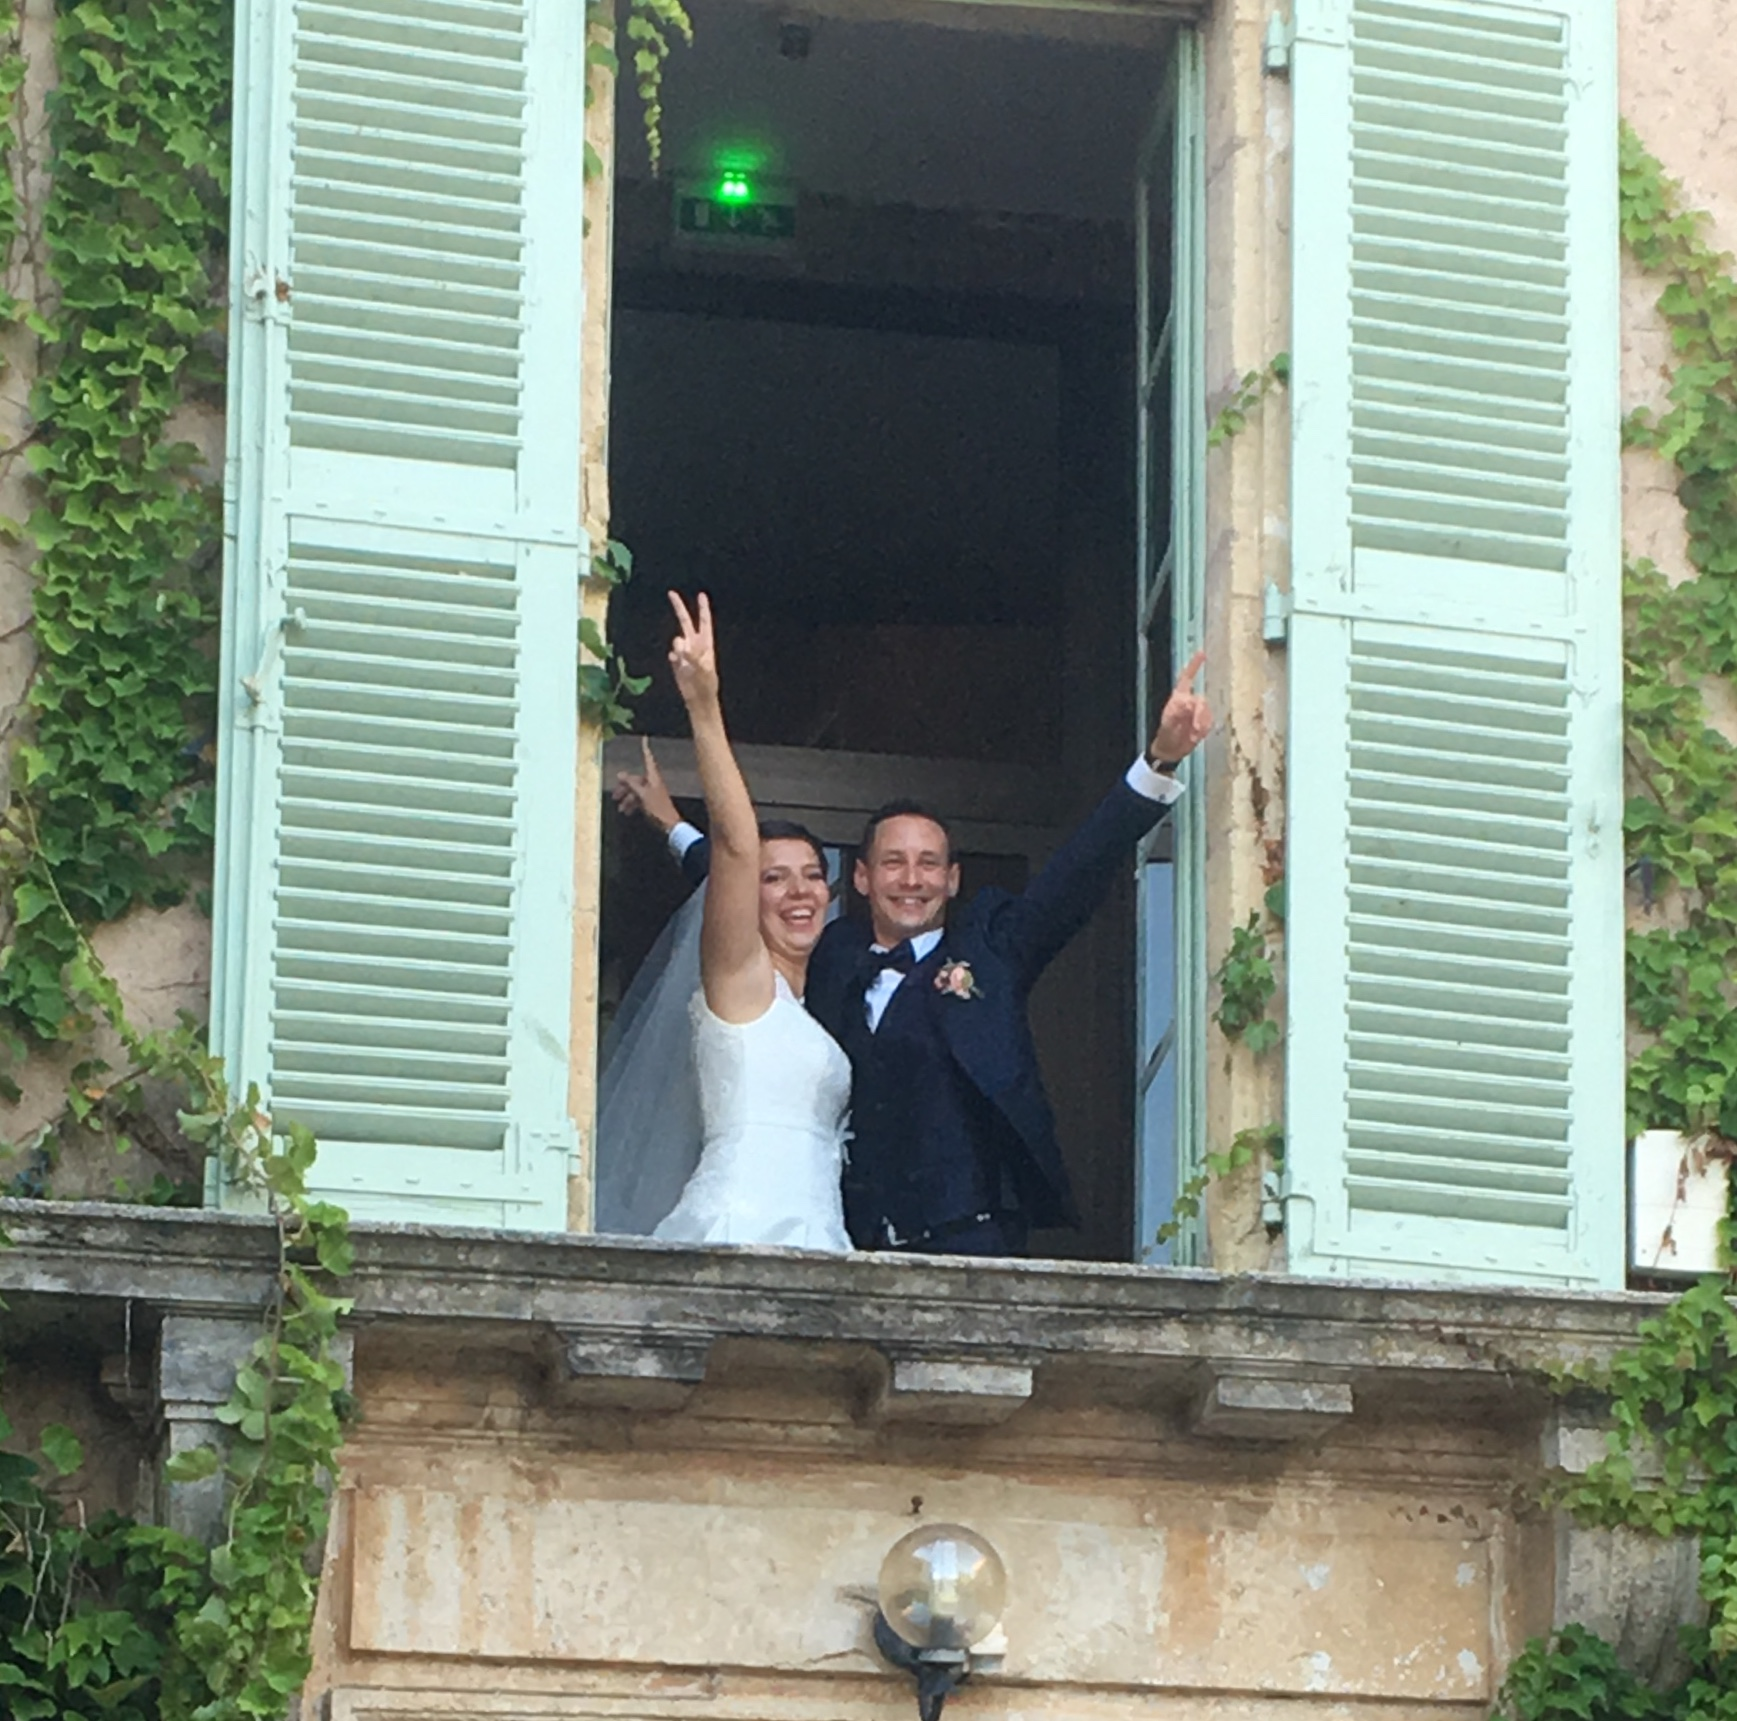 marie lp-wedding-planner-montpellier-ceremonie-laique